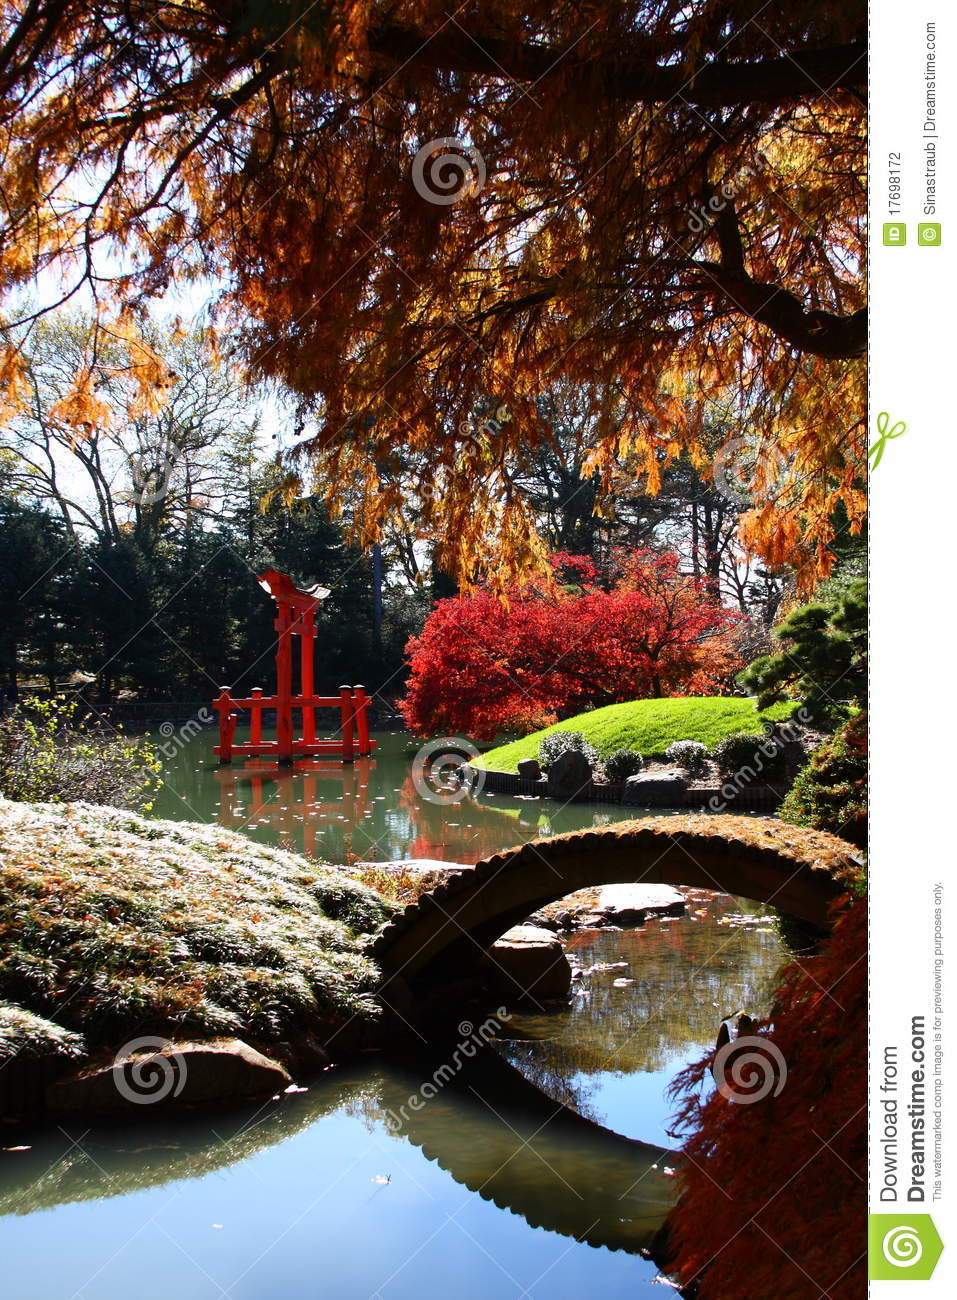 Brooklyn Botanical Gardens Indian Summer. Royalty Free Stock Photo